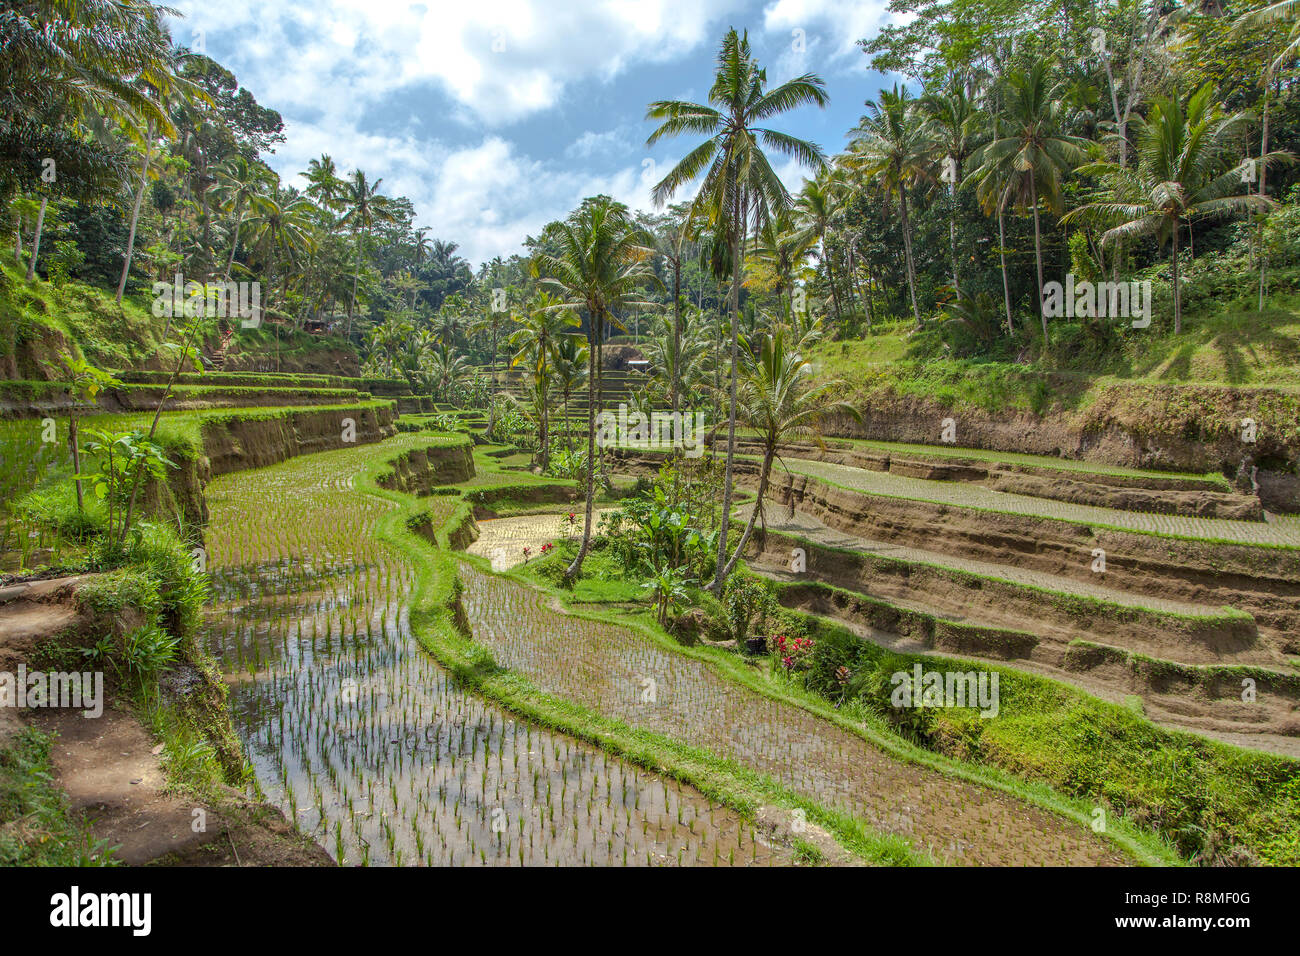 A Tegalalang rice terrace views of Bali in Indonesia. Stock Photo